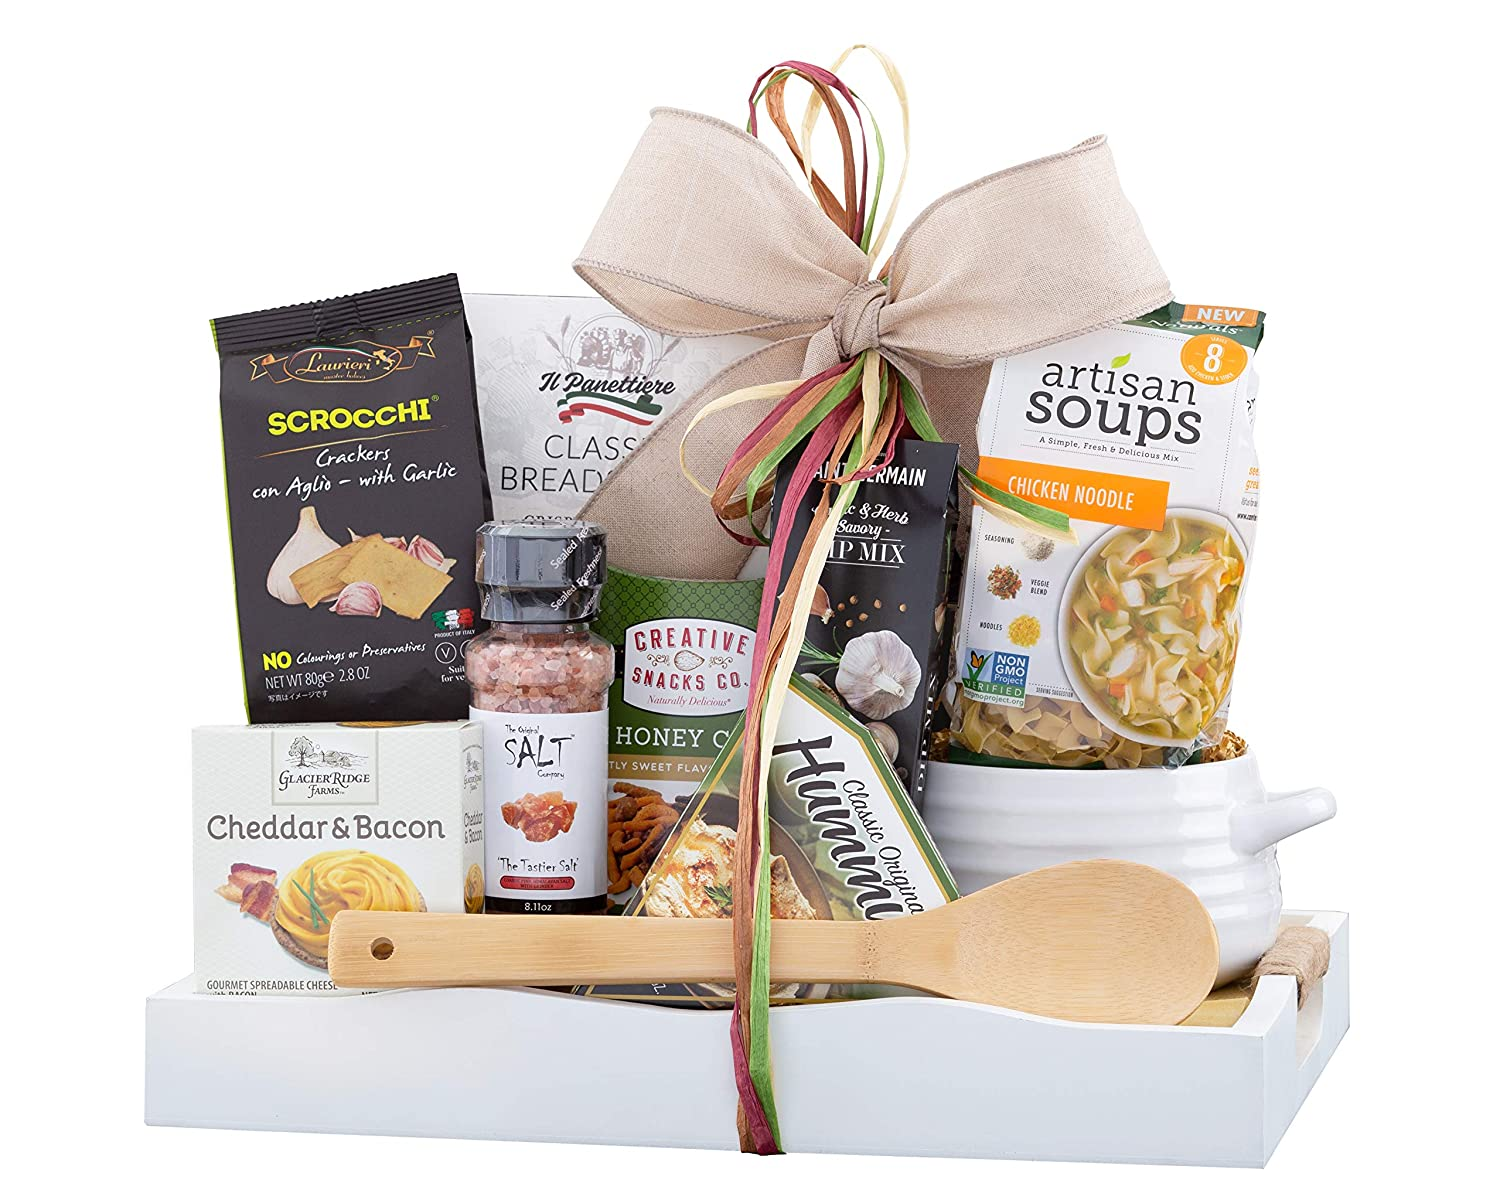 Wine Country Gift Baskets Soups On Family Gift With Delicious Food Old Fashioned Comforting Chicken Soup Walmart Com Walmart Com